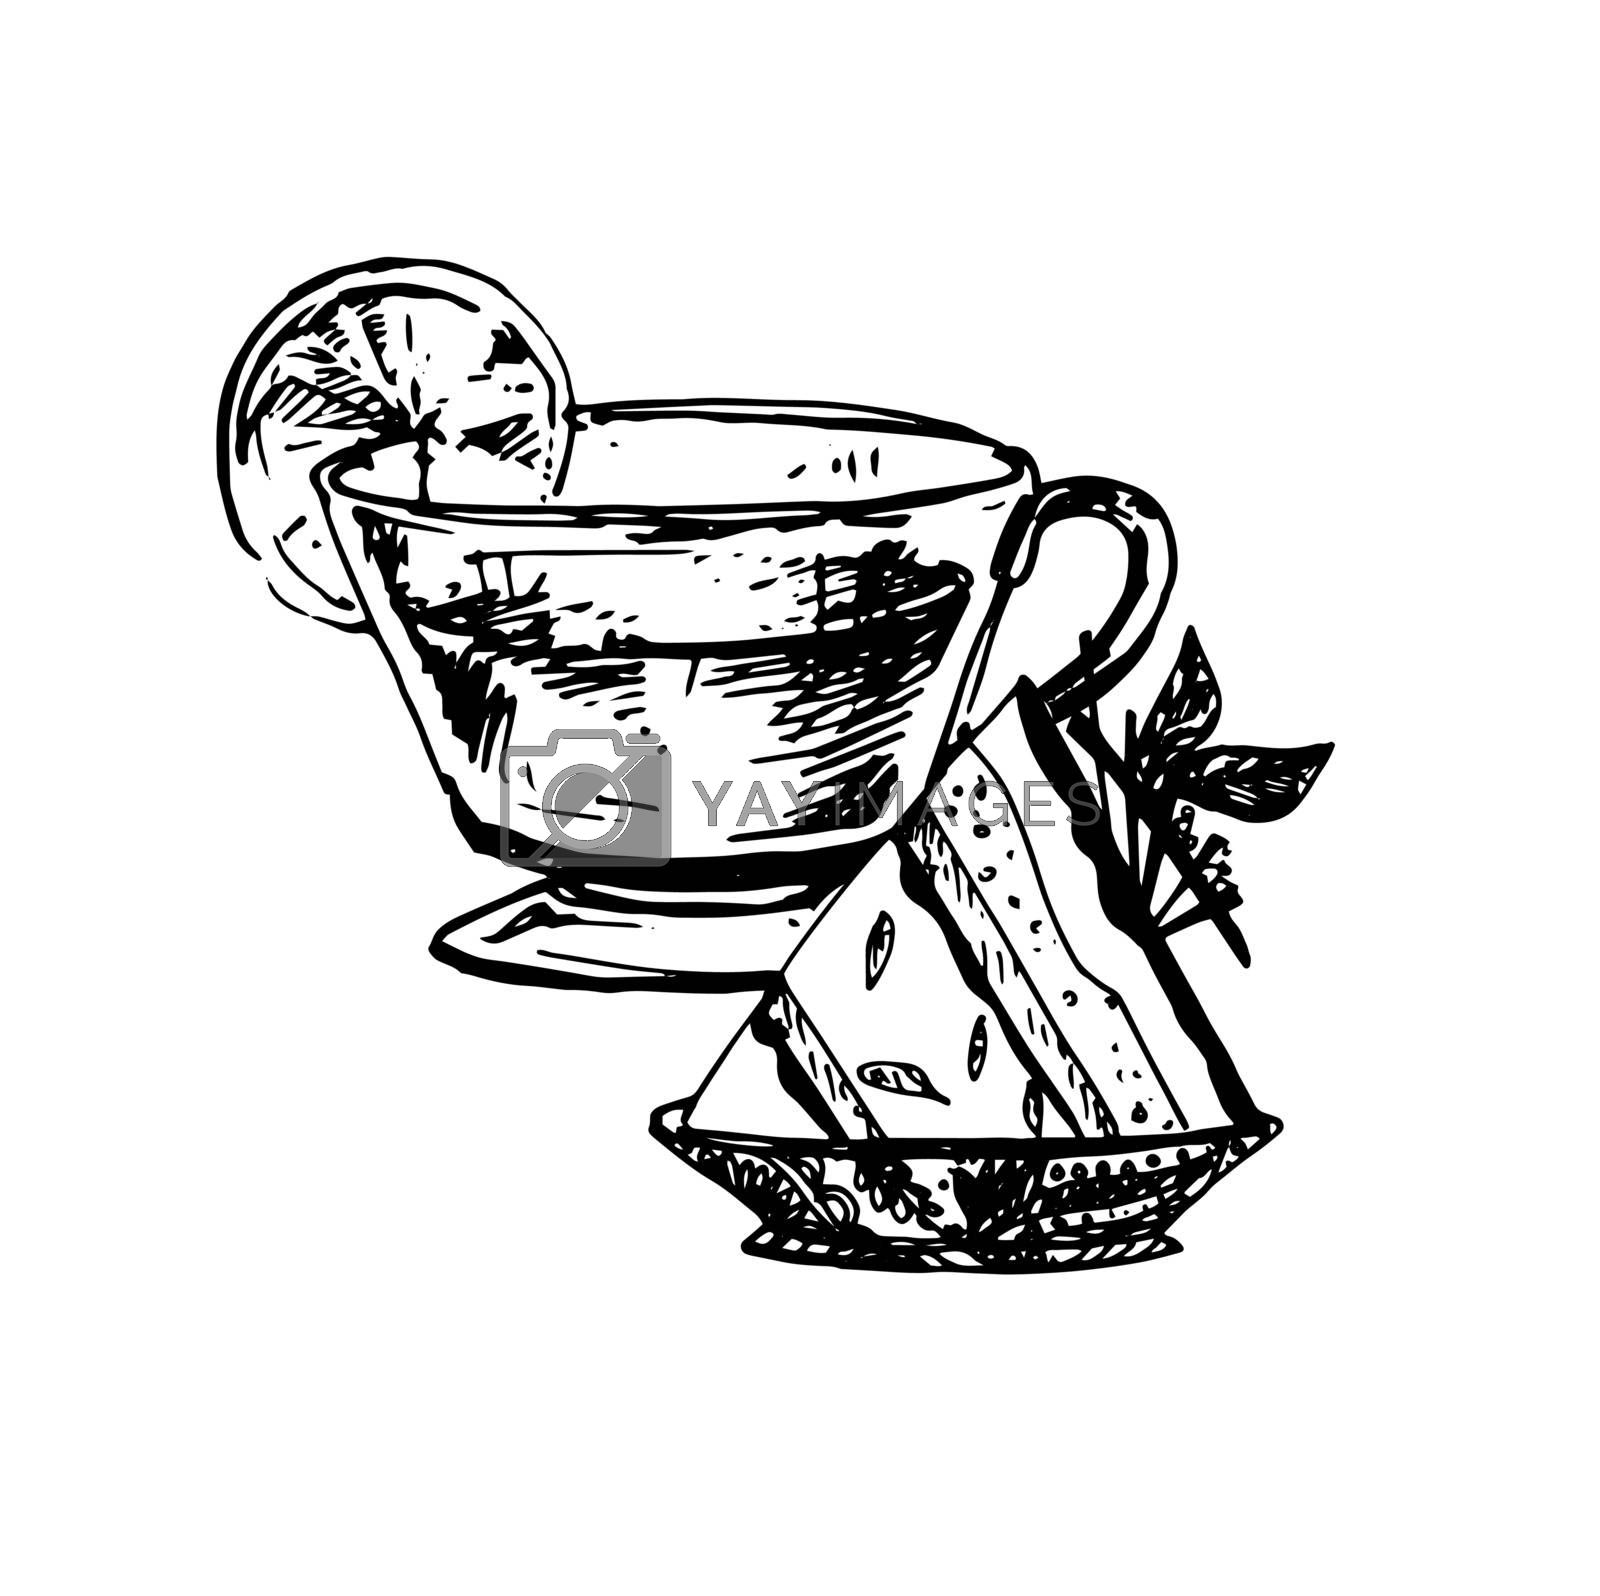 Hand Drawn Sketch of Tea Cup and Delicious Cheesecake. Vintage Sketch. Great for Label, Poster